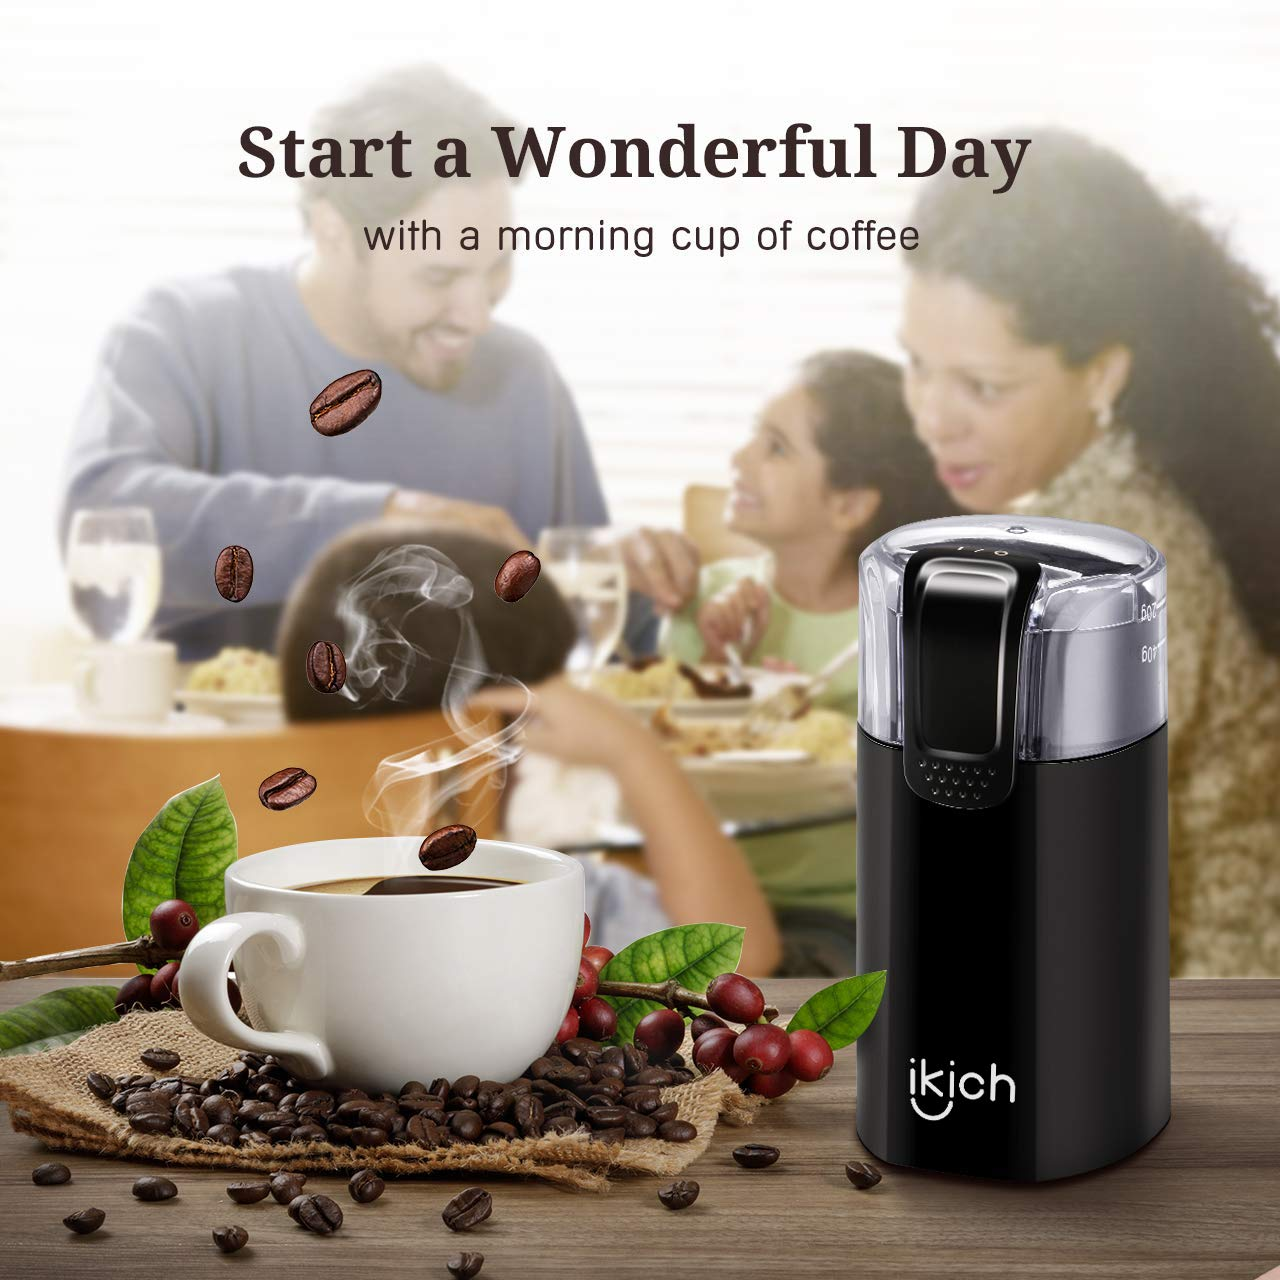 IKICH Coffee Grinder Electric, 150W Powerful Blade Coffee Bean Grinder with 12 Cups Large Grinding Capacity, Cord Storage, Portable & Compact, also for Spices, Pepper, Herbs, Nuts, Seeds, Grains by IKICH